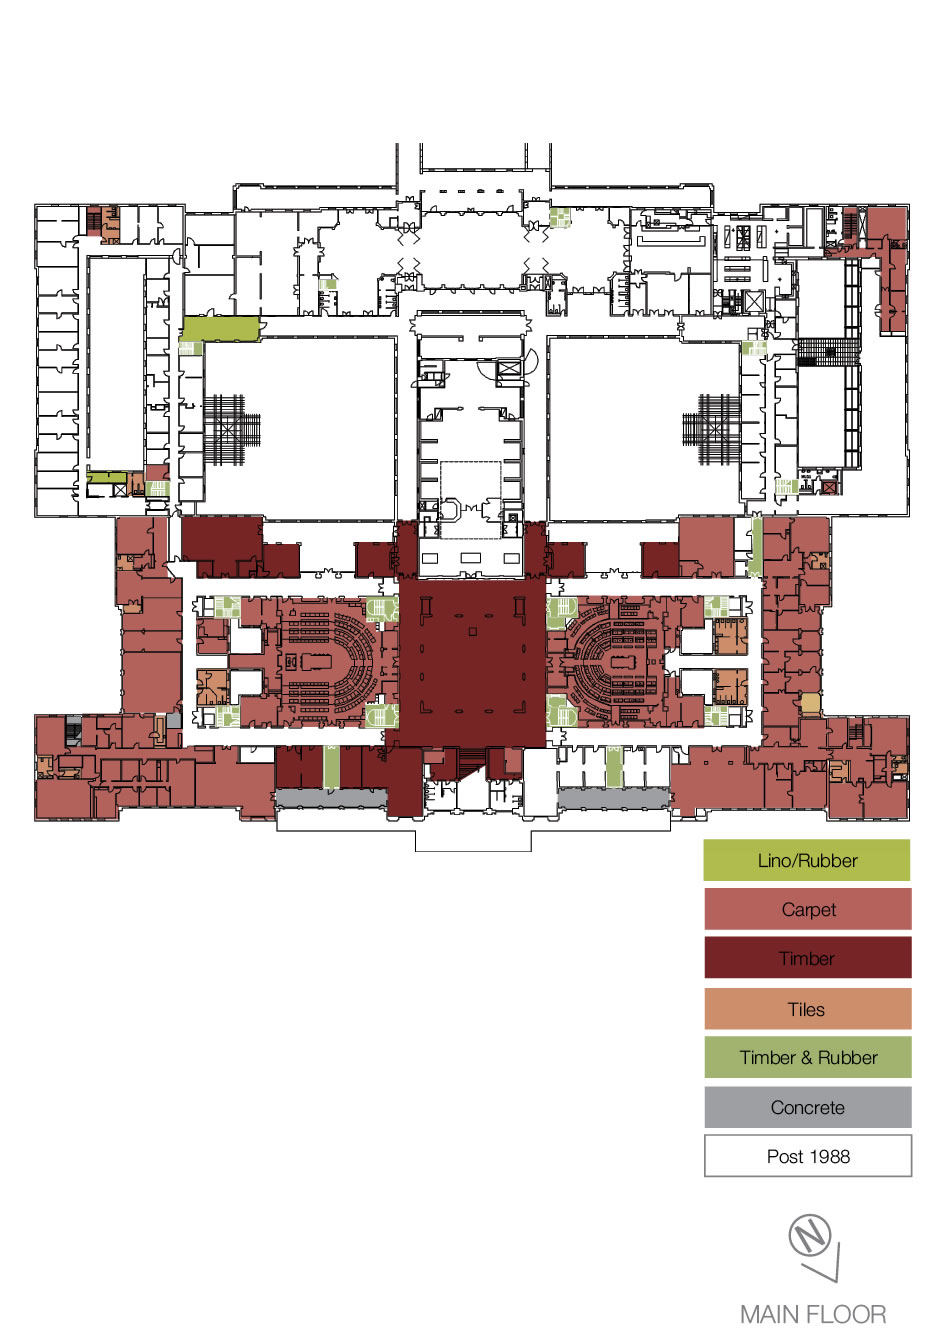 Floorplan showing the types of heritage floor coverings on the main floor.